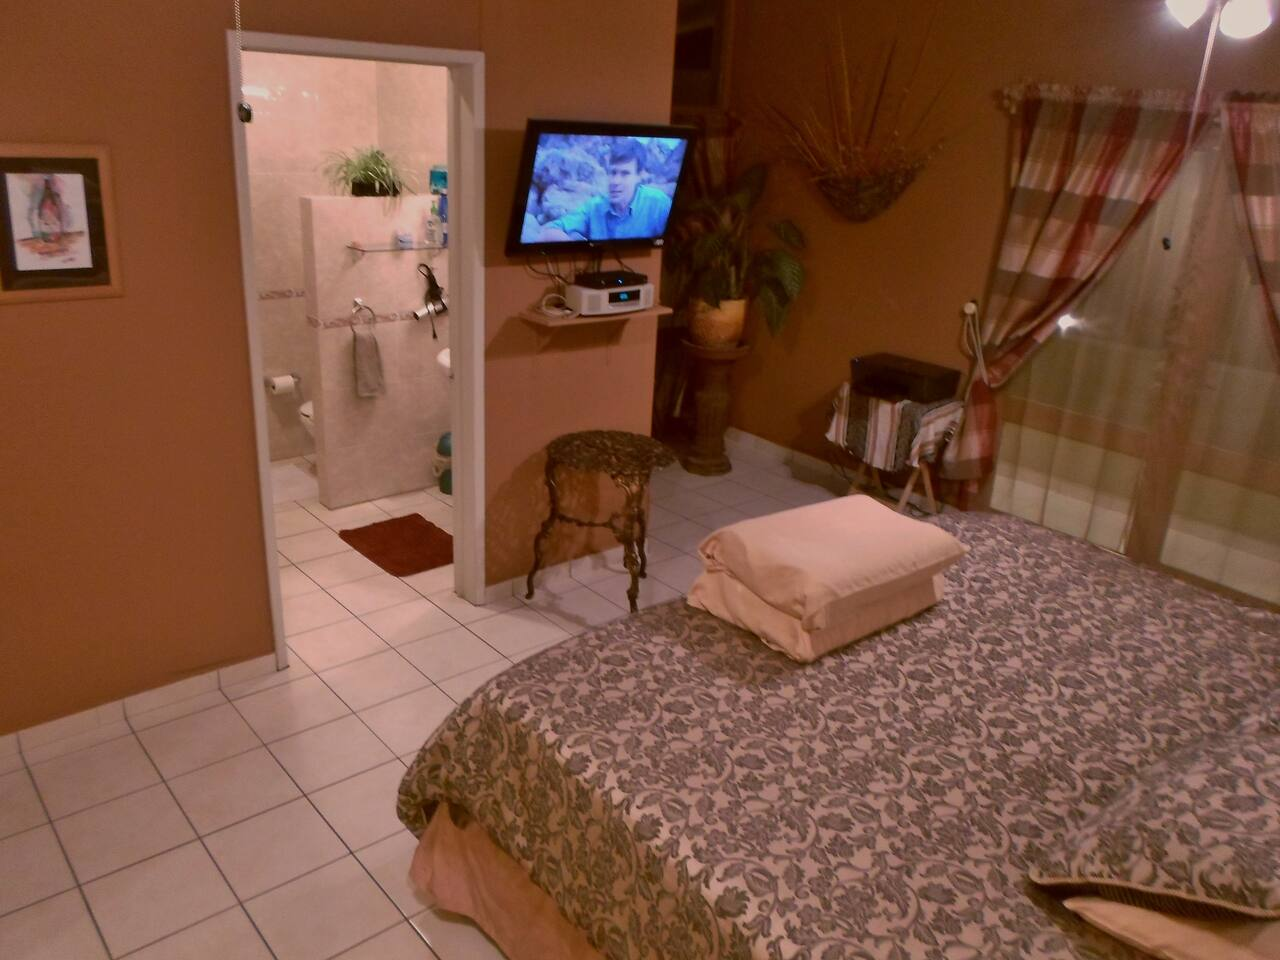 A private bathroom add to the privacy of this large room that is appreciated for longer stays.